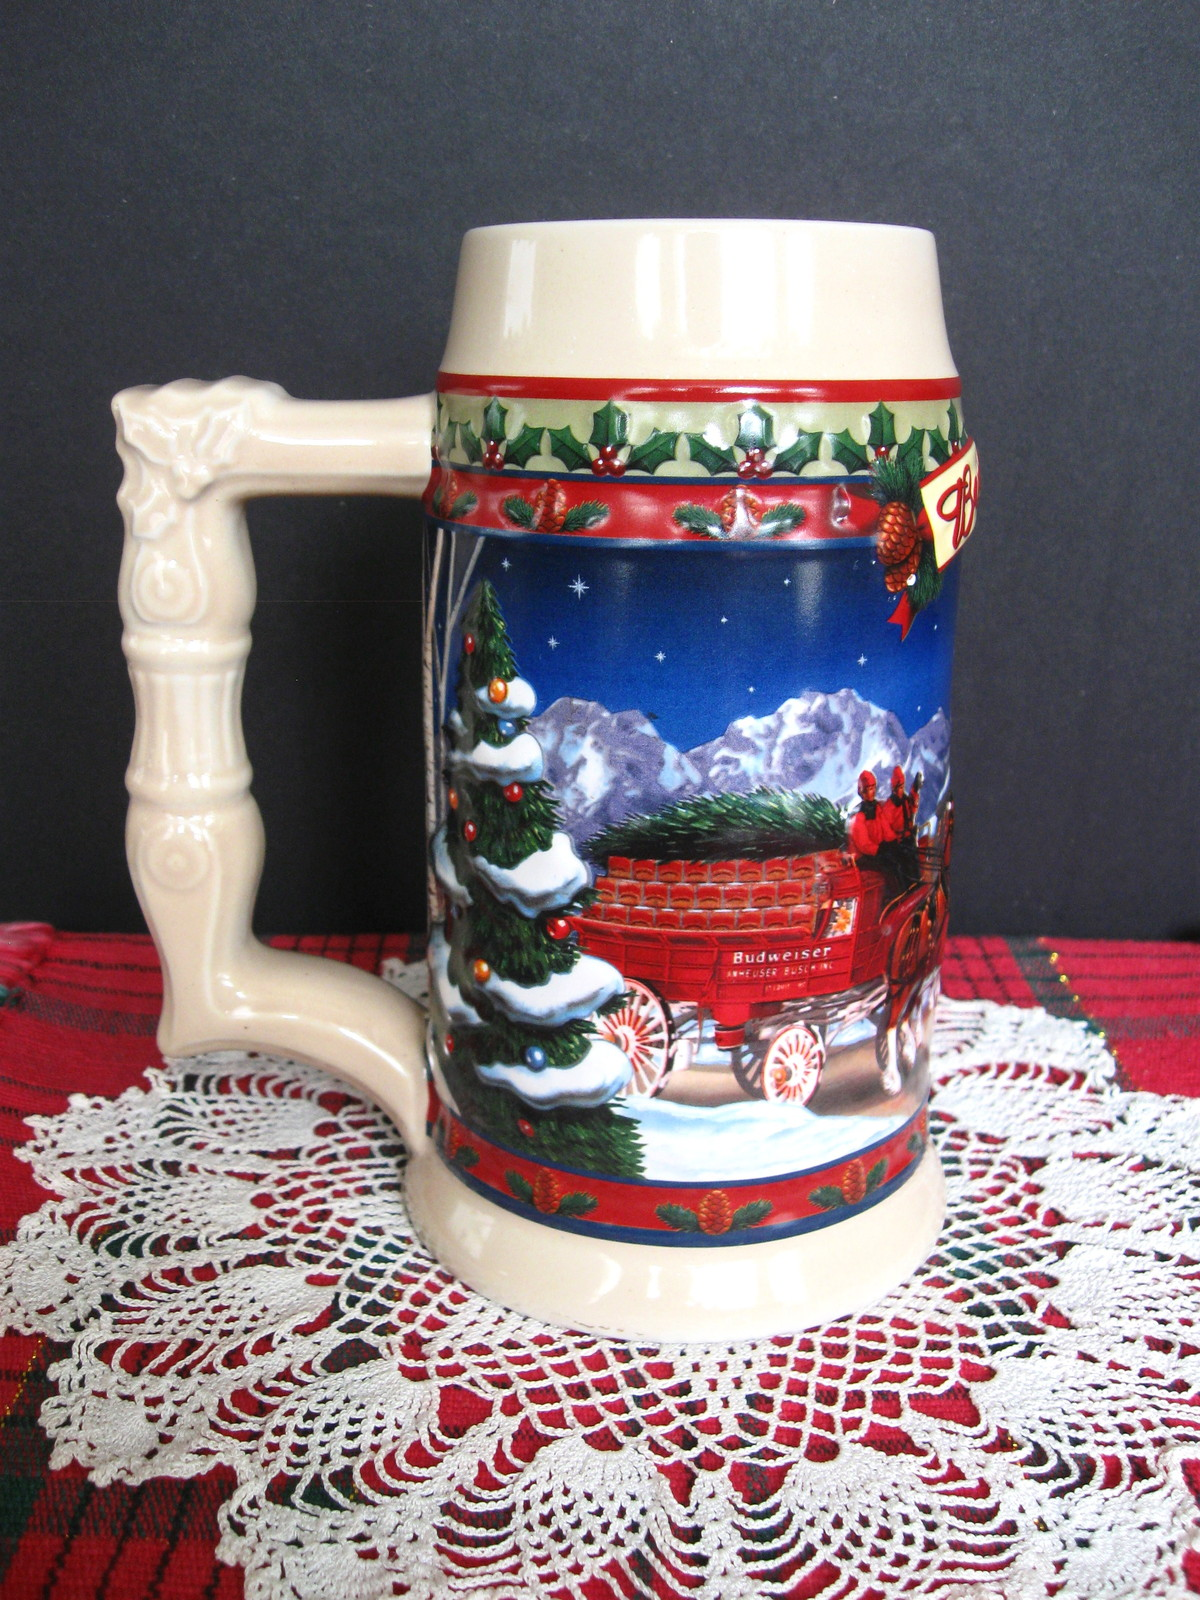 2003 Budweiser Holiday Stein - Old Towne Holiday - No. CS560 - No Box